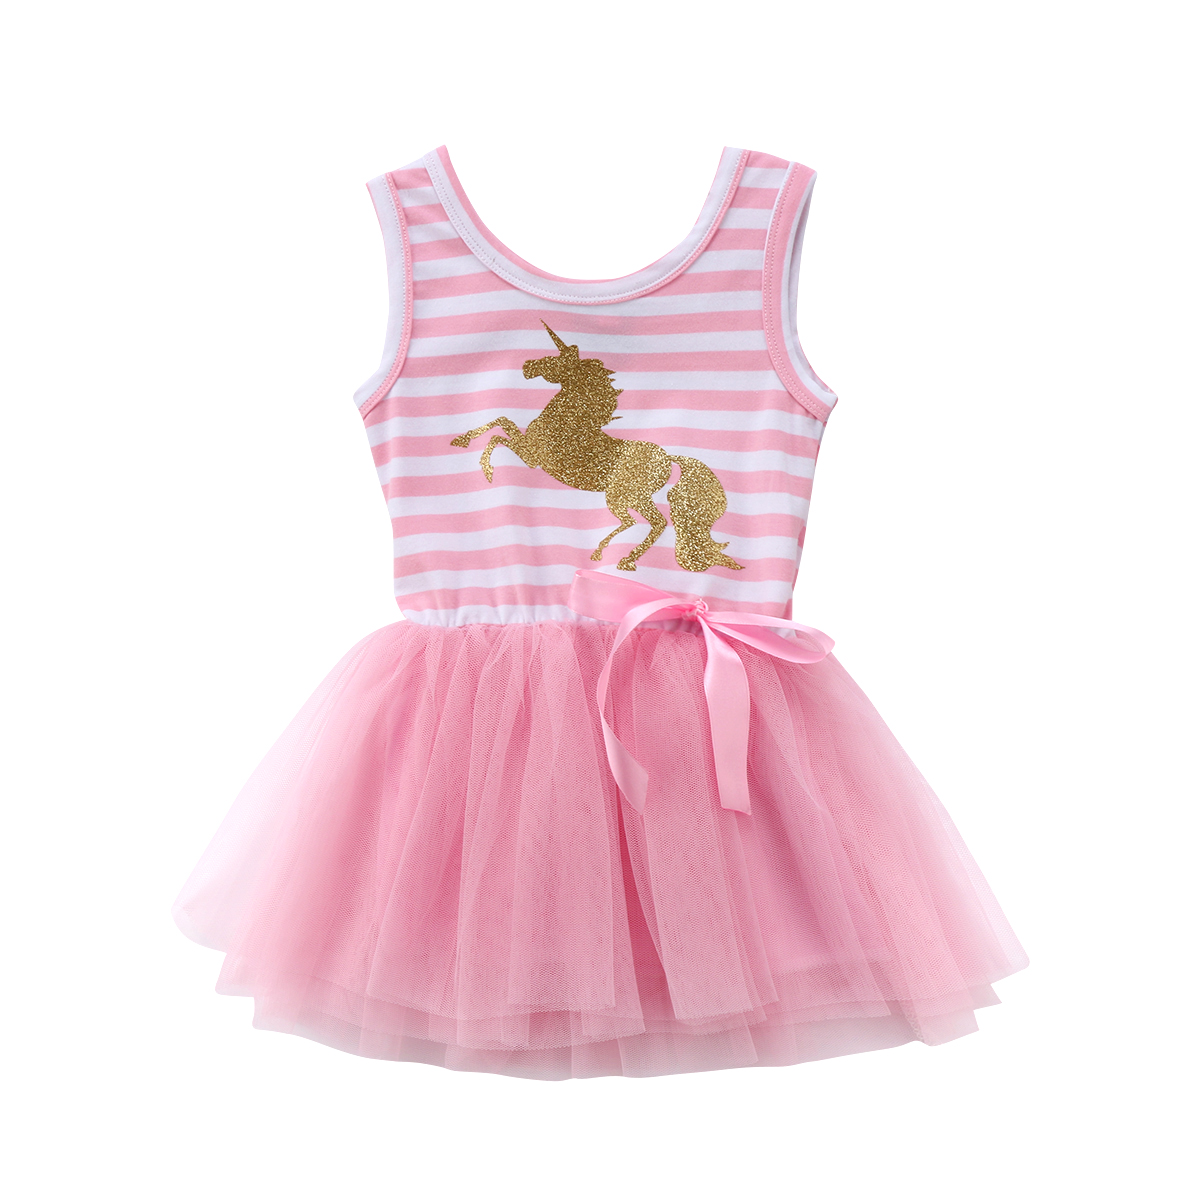 0 5y kid baby girls dress 2018 new cartoon unicorn baby